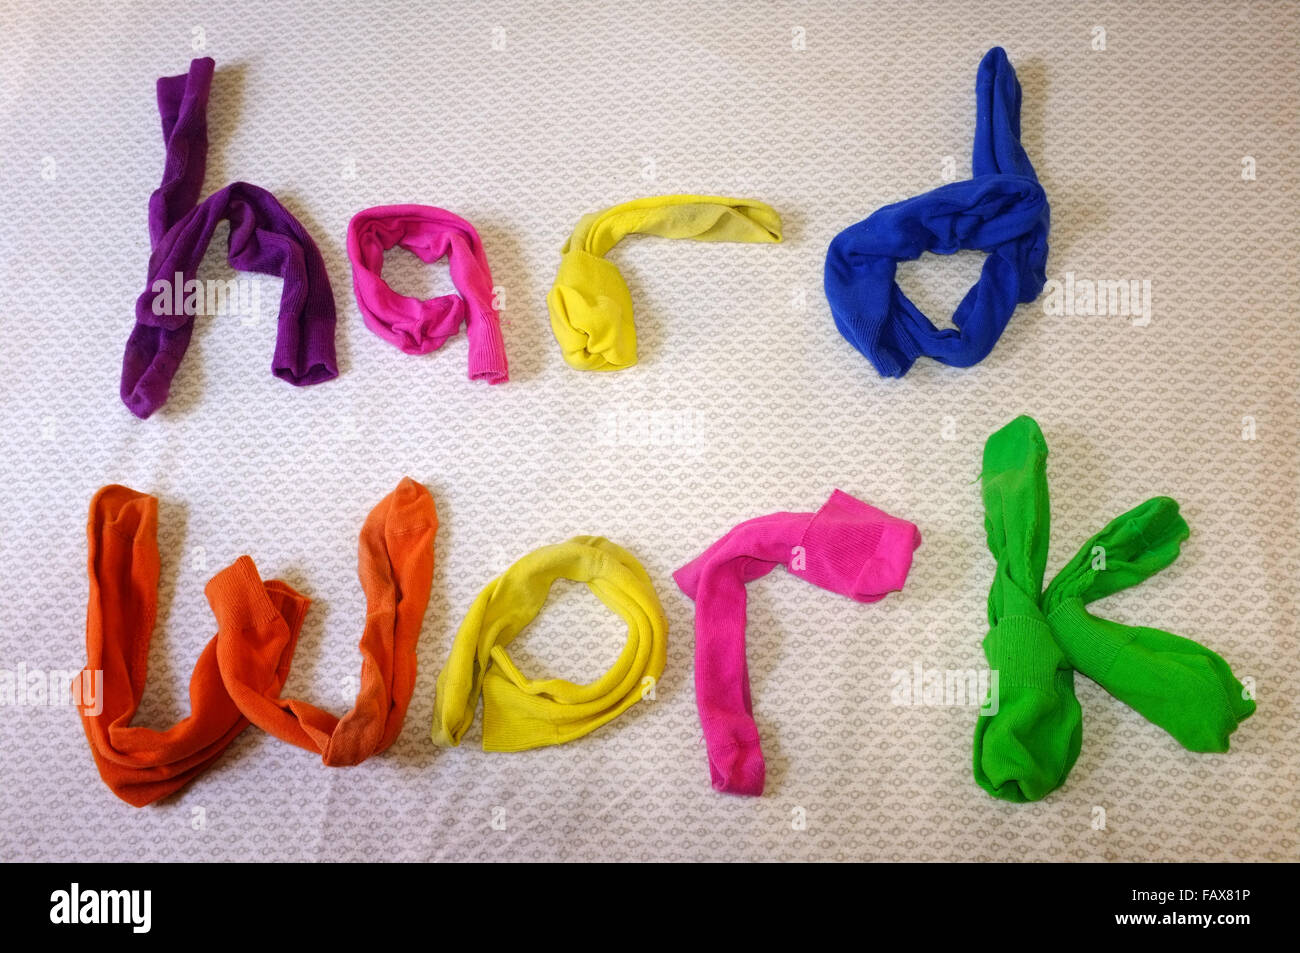 The words hard work made out of colourful socks laying on a duvet cover. - Stock Image